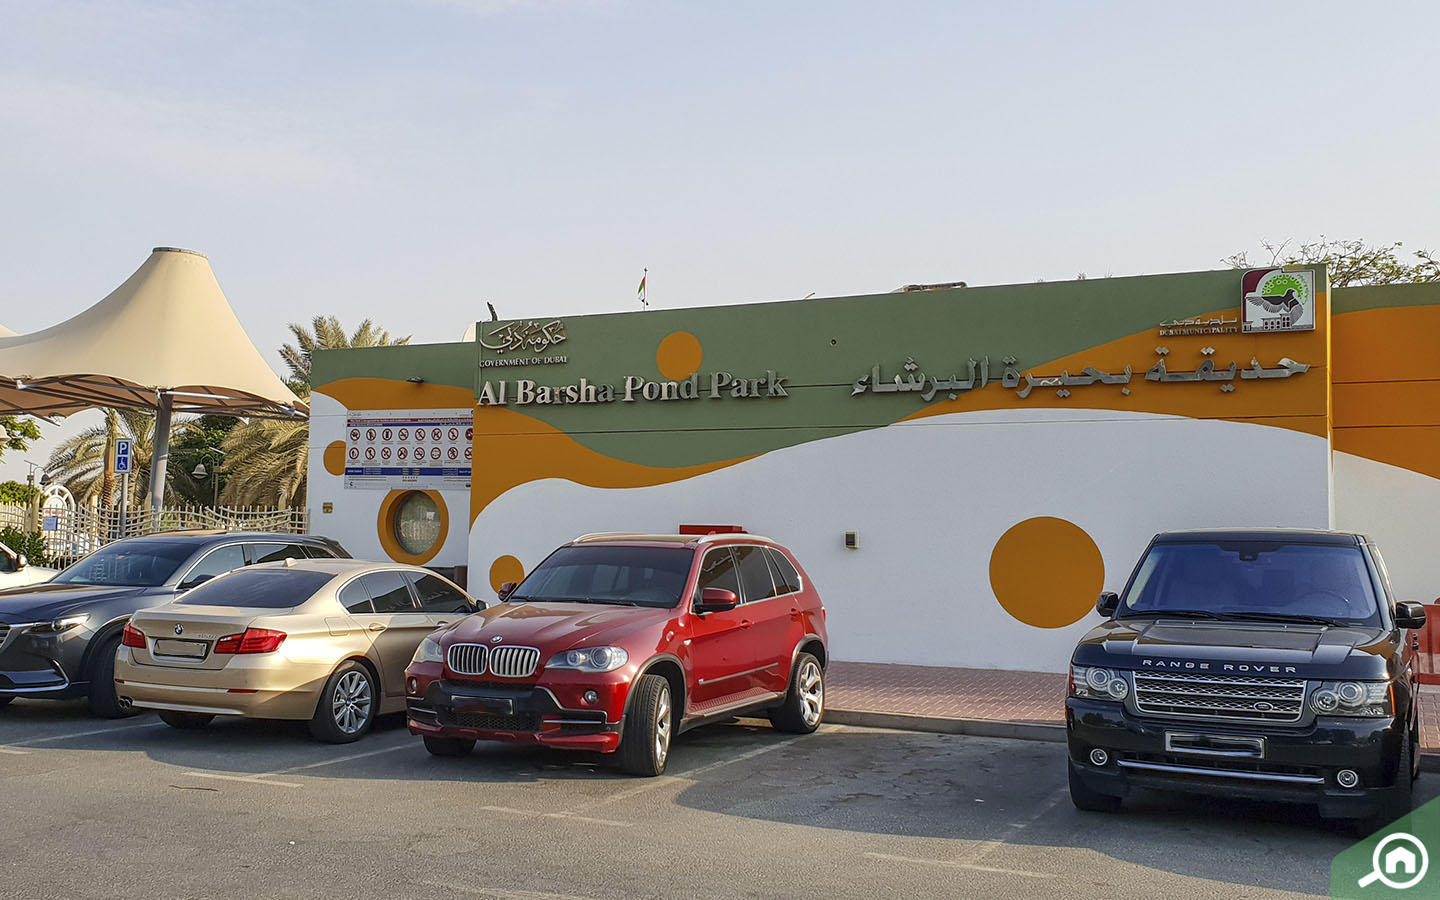 Al Barsha Pond Park entrance